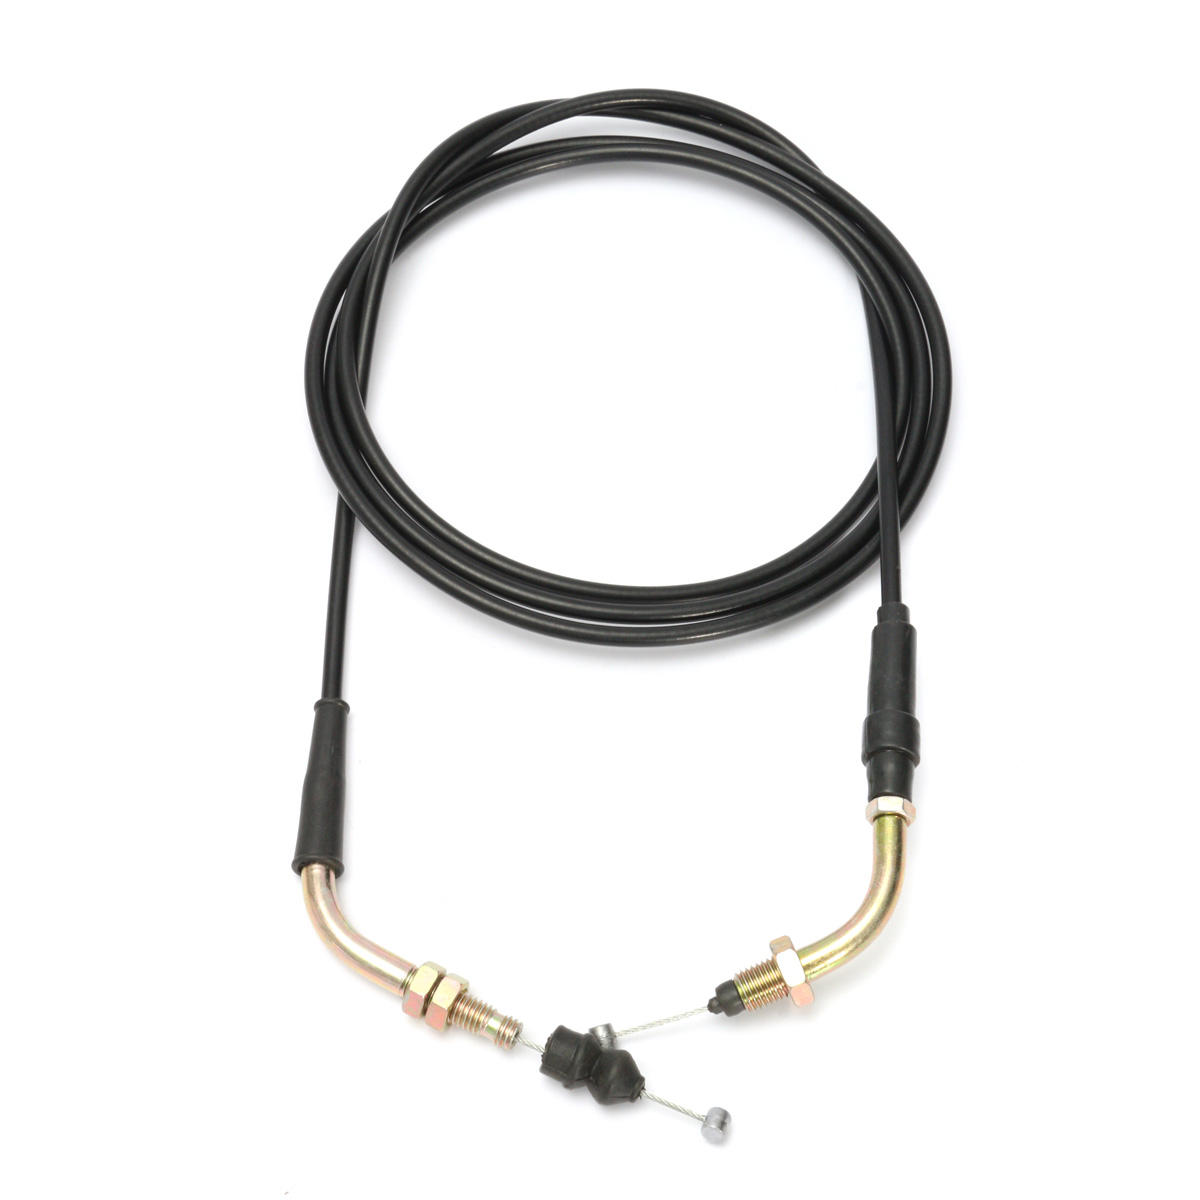 Throttle Cable For 139qmb Gy6 50cc Chinese Scooter Moped